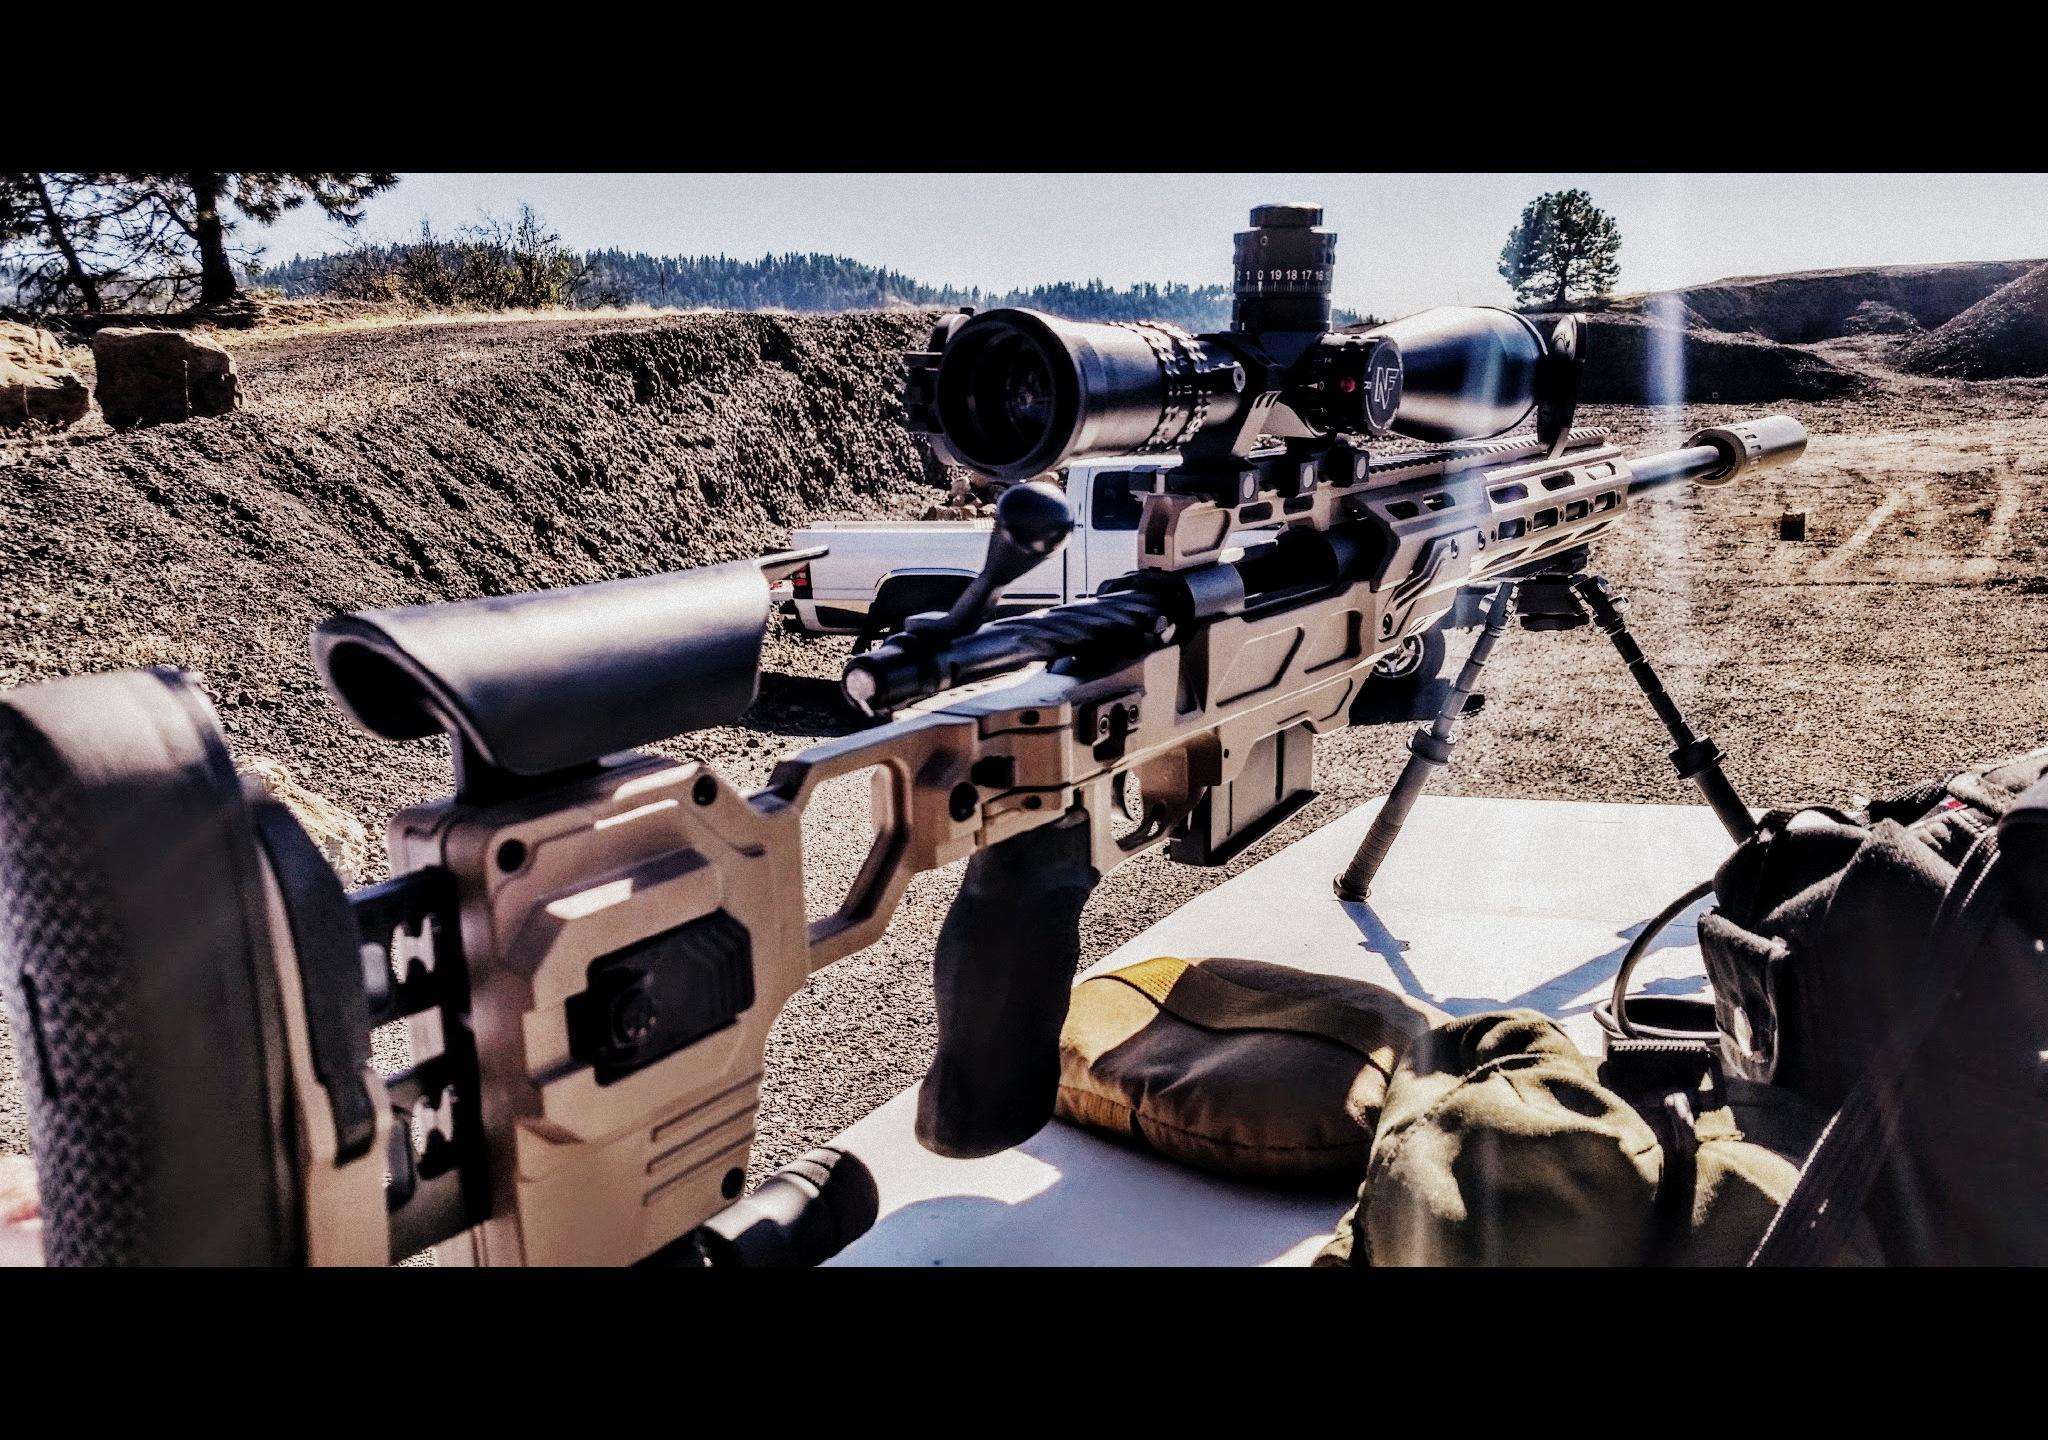 338 builds (lapua/edge/or the like) lets see them  | Long